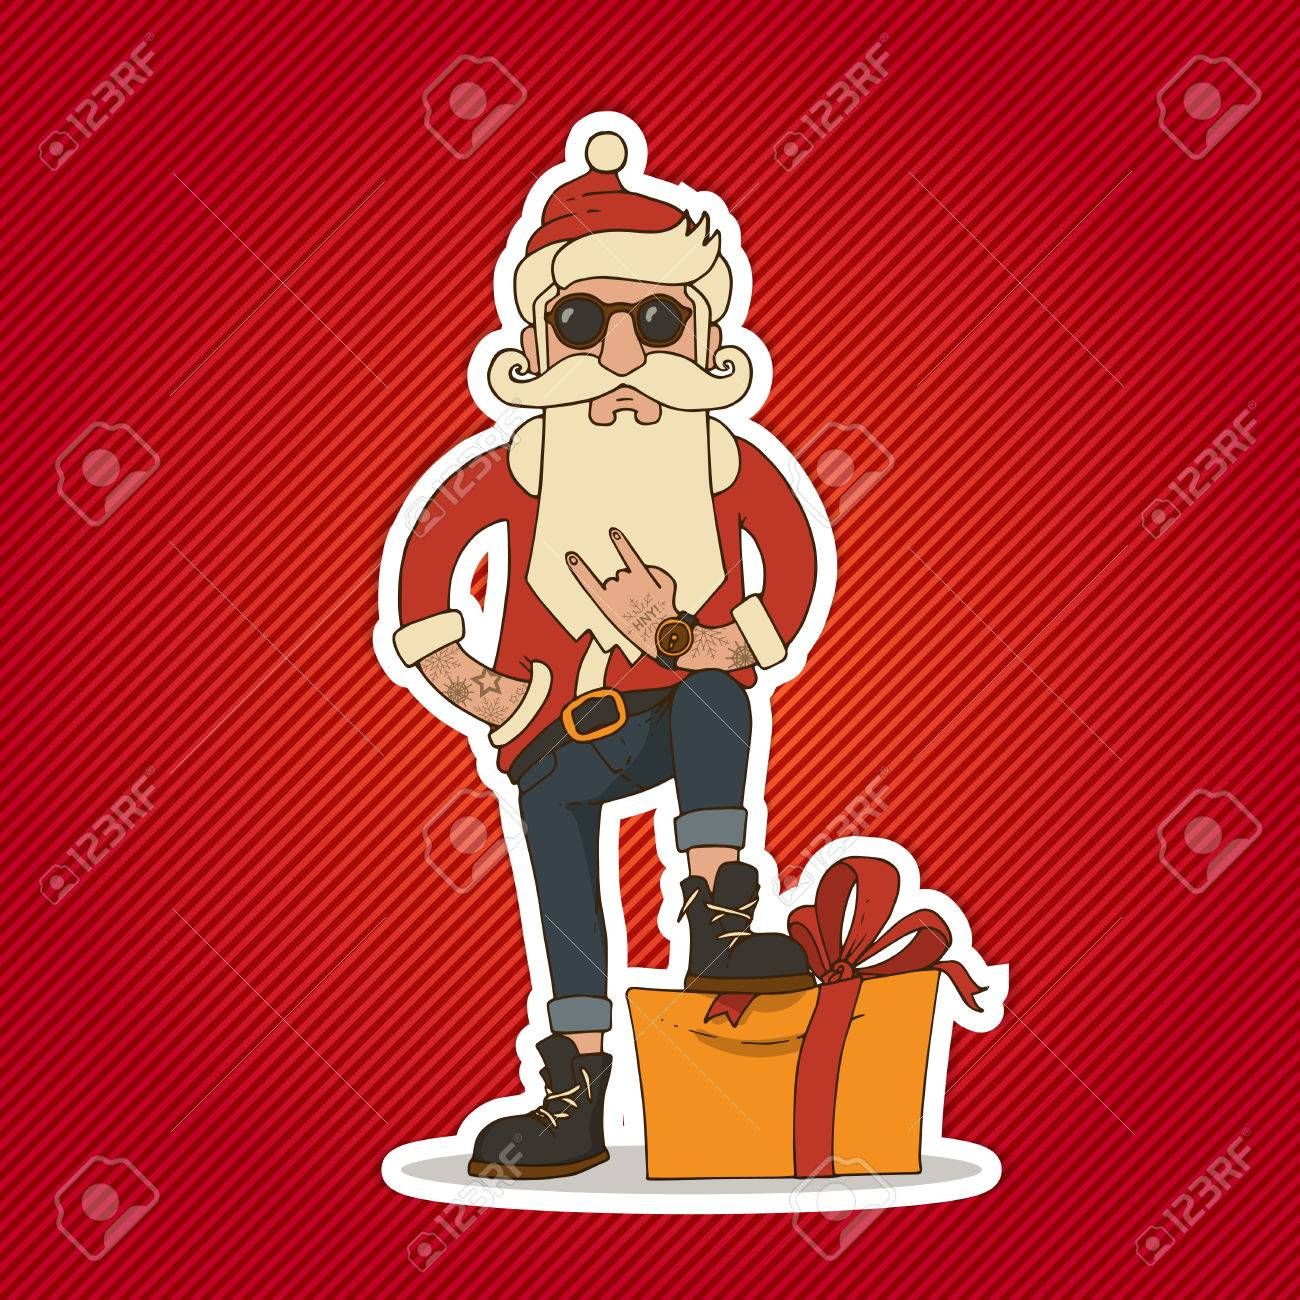 7f8d86f37d9 Hipster Santa Claus with Stylish beard and hip sunglasses. Christmas and  New Year vector illustration